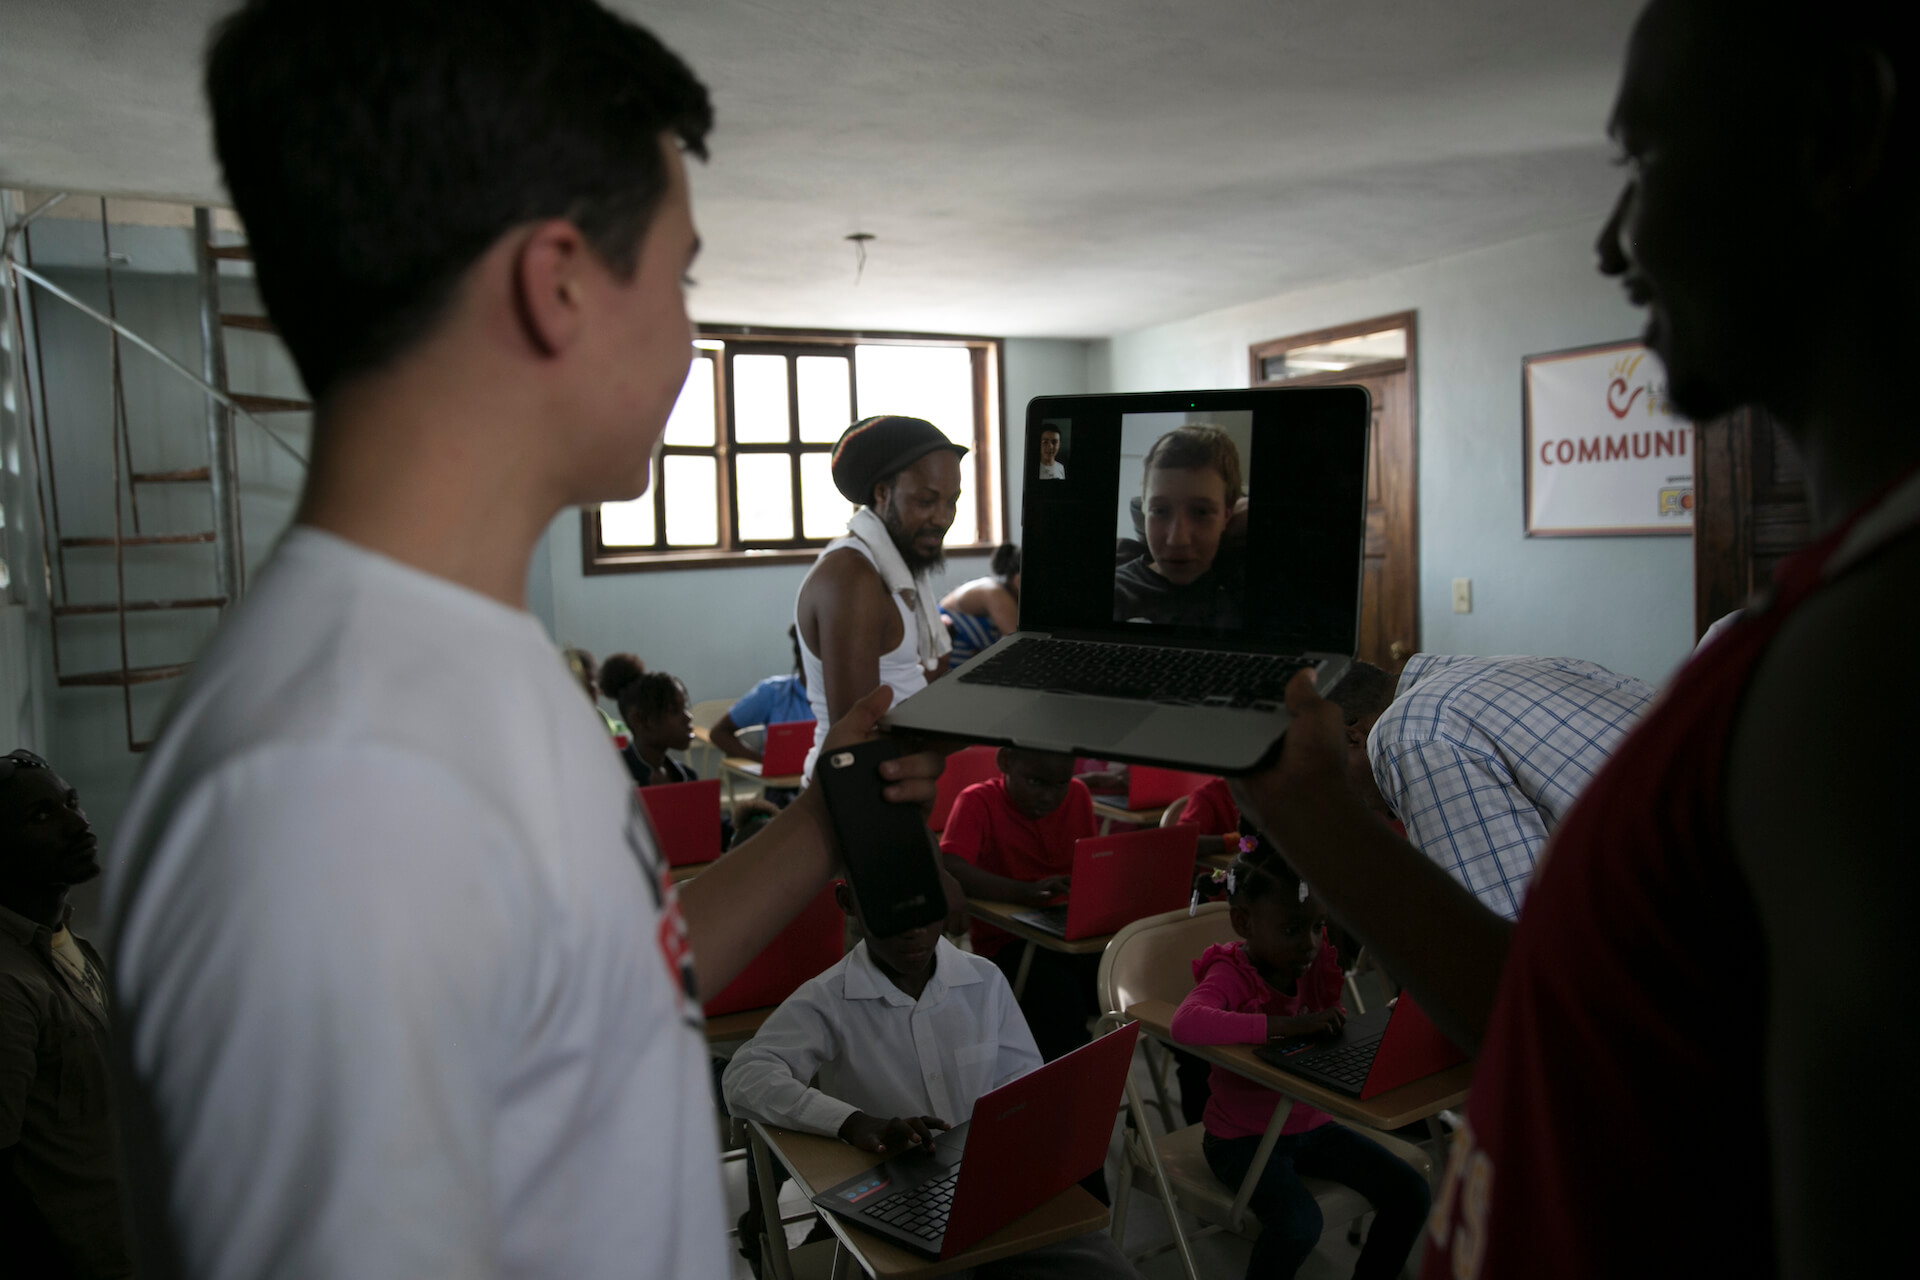 Lorenzo Tobin, one of our A&M Student Atheletes, leads a Skype call between some of our sponsored students in Haiti and our student atheletes in New York. They got to meet each other and ask quesionts about their lives,